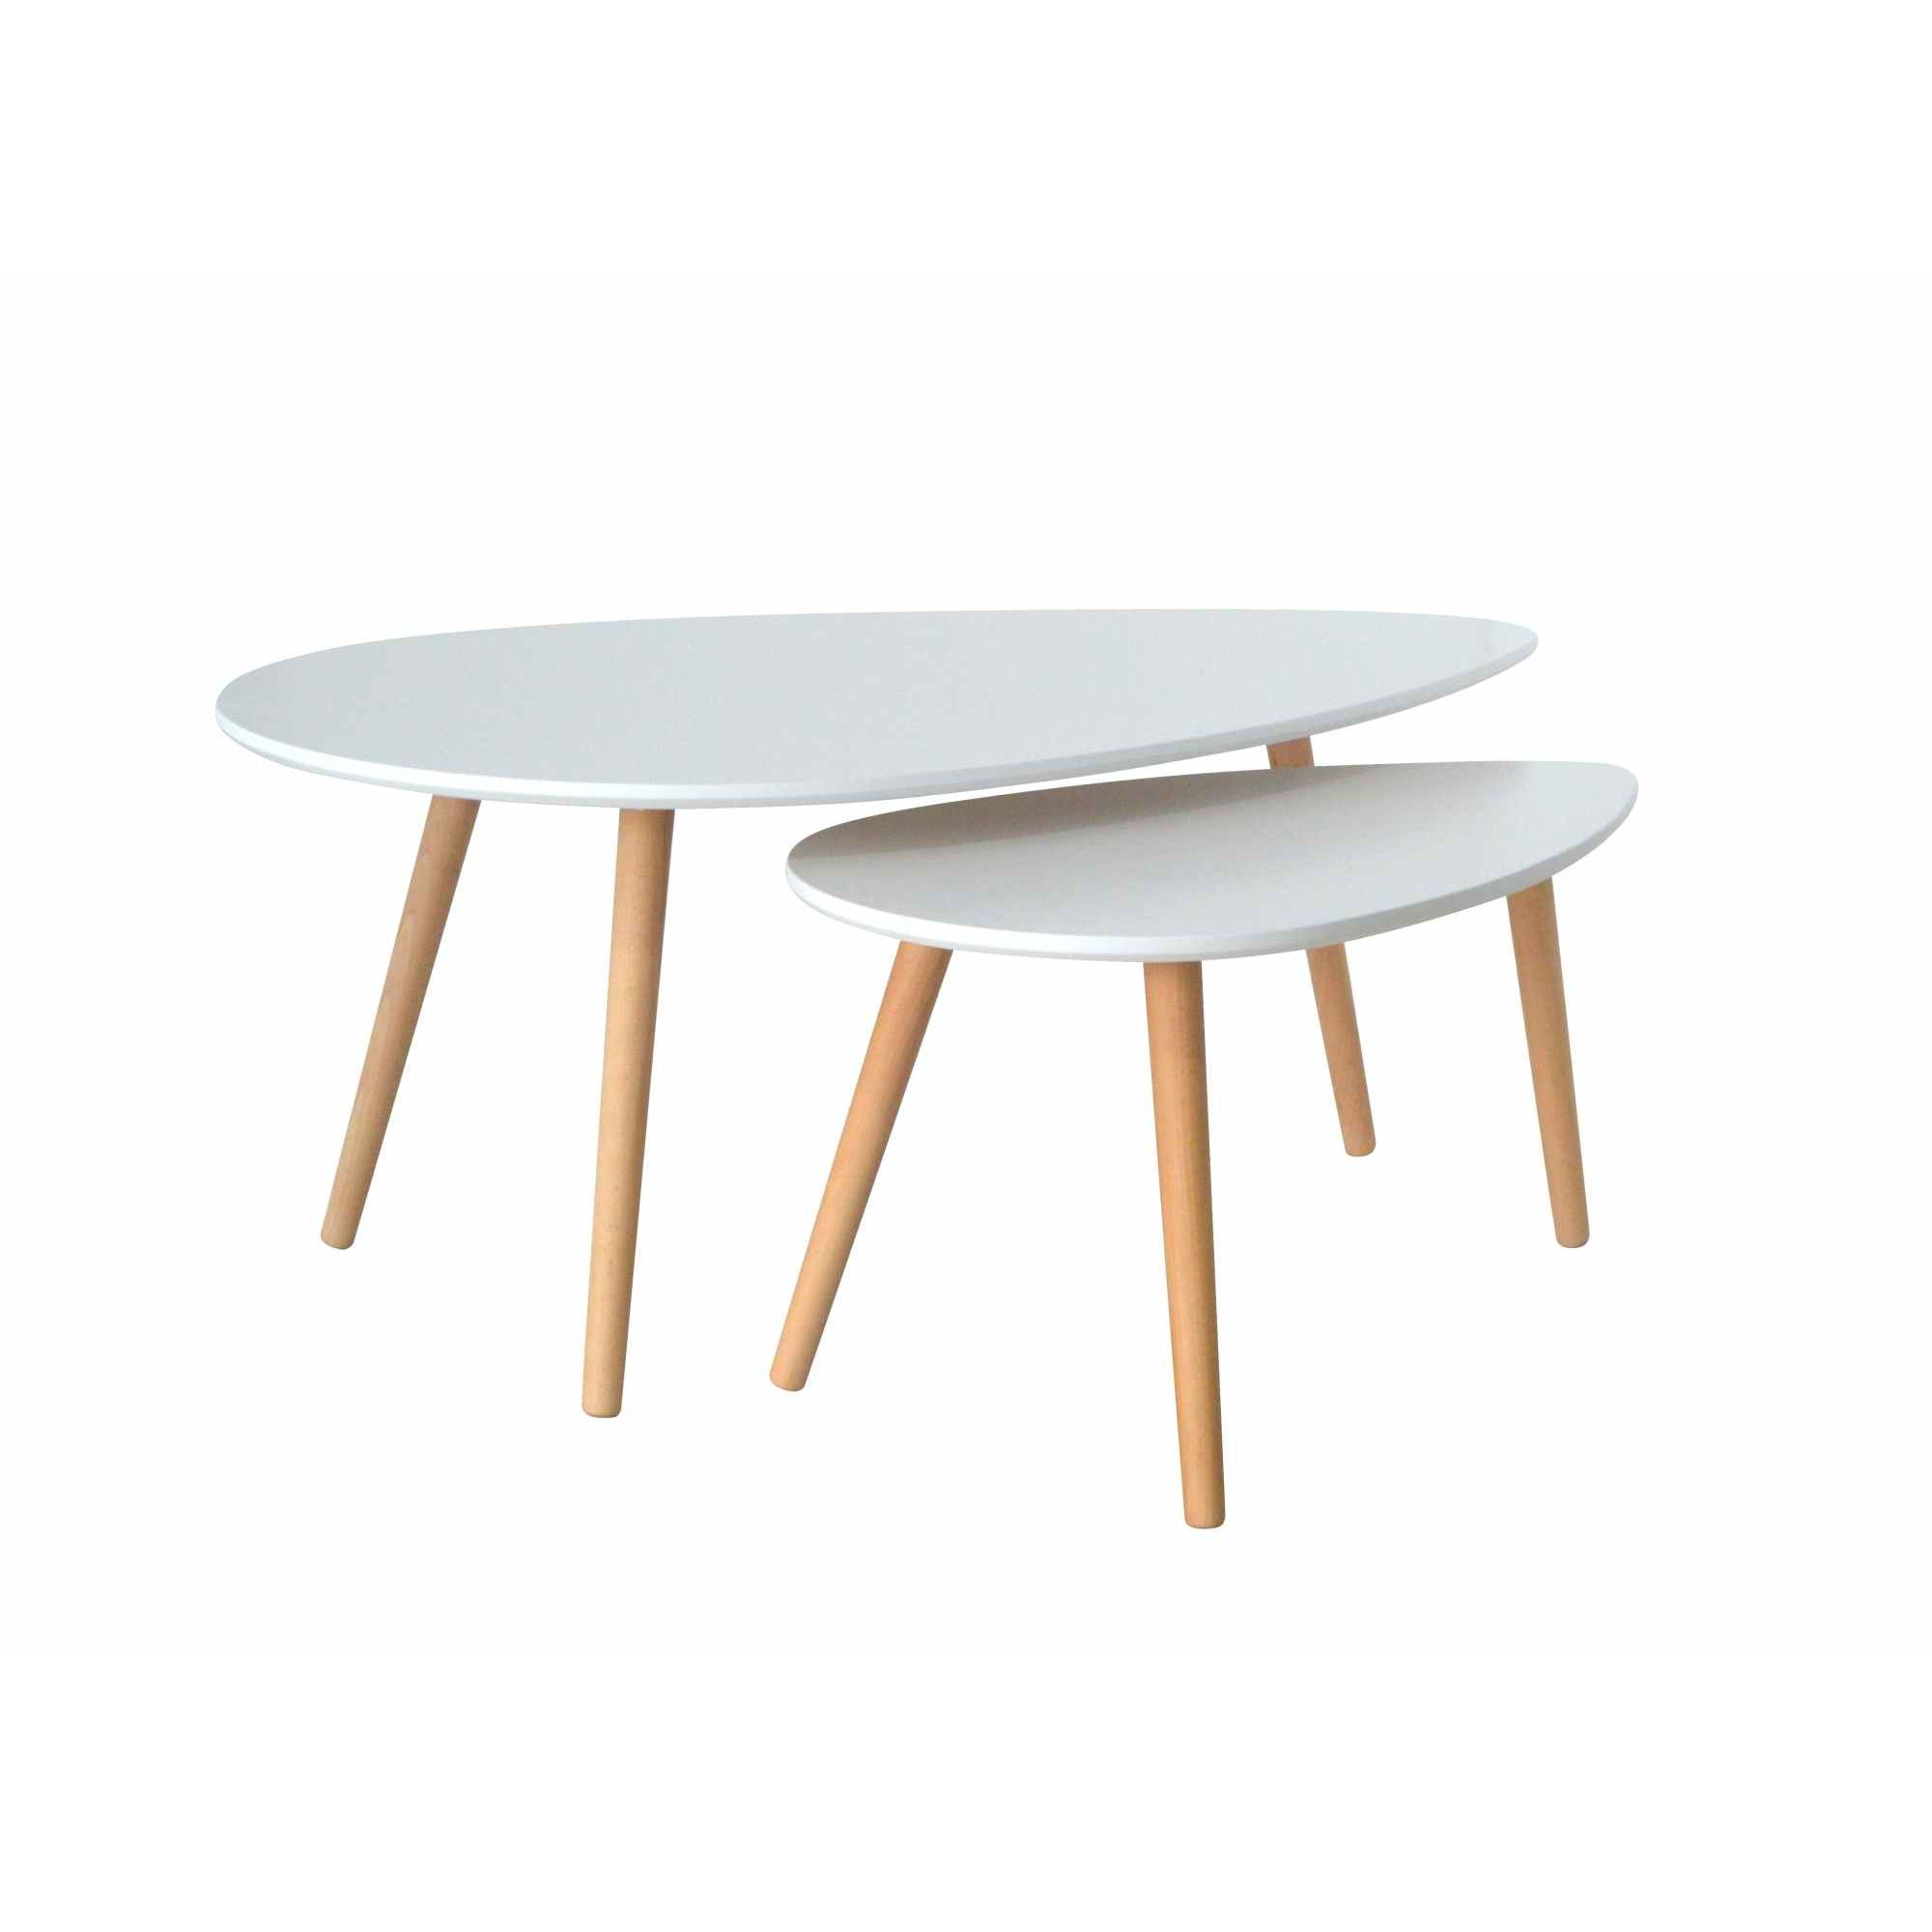 Table basse scandinave bois clair for Table basse scandinave en chene